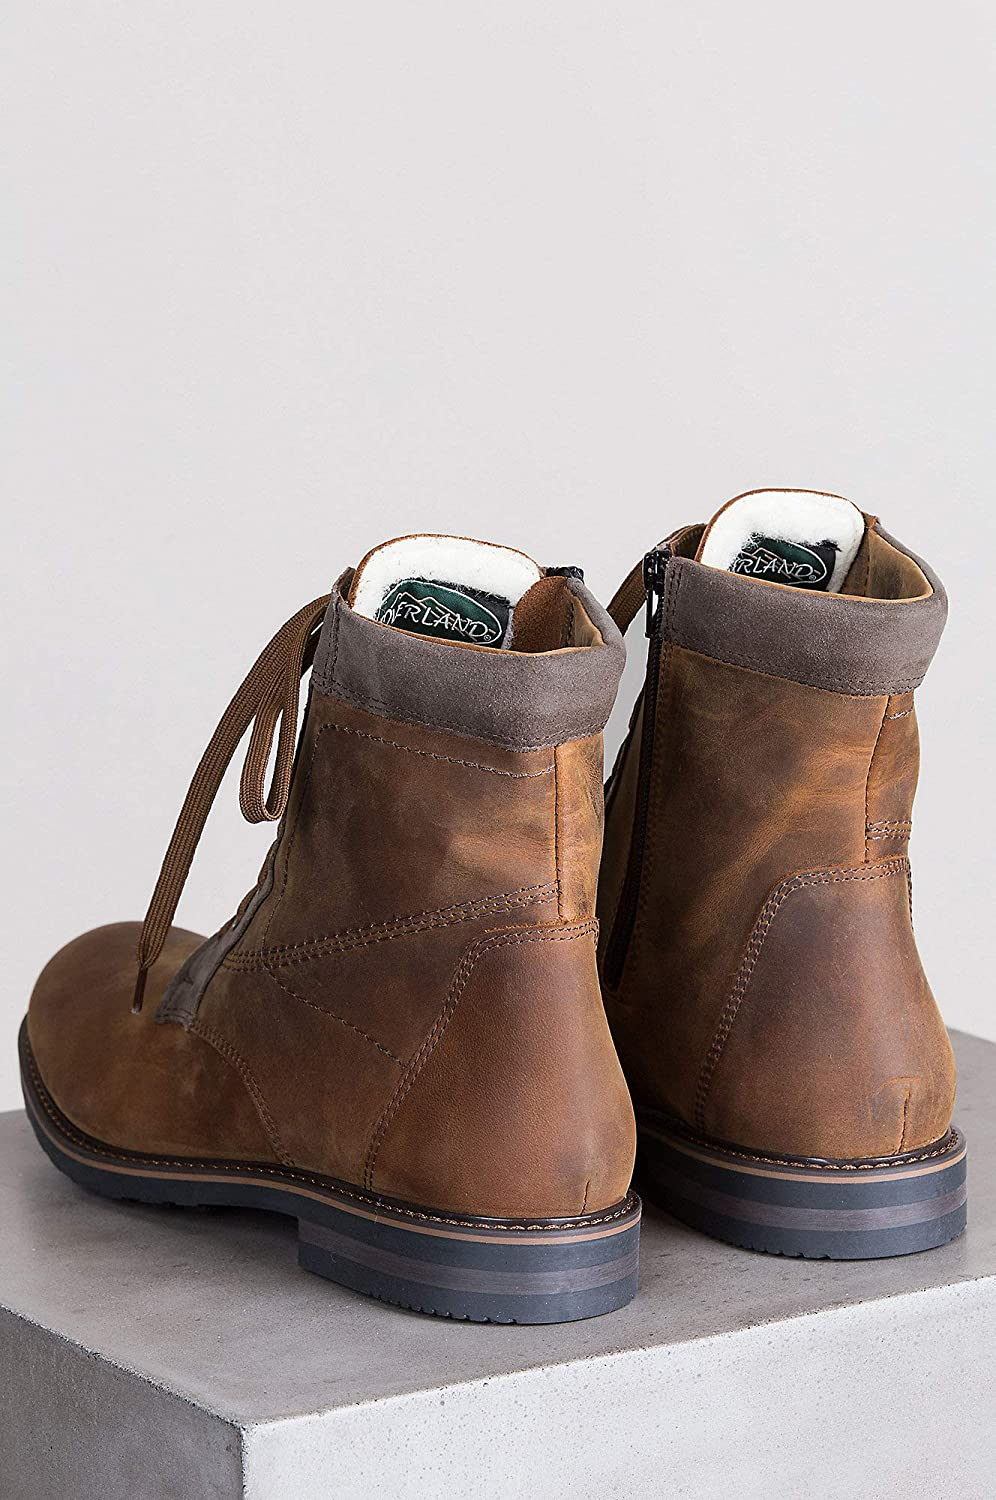 474ffc89caa3ca Amazon.com | Overland Sheepskin Co Men's Isaac Shearling-Lined Waterproof  Nubuck Leather Boots | Boots